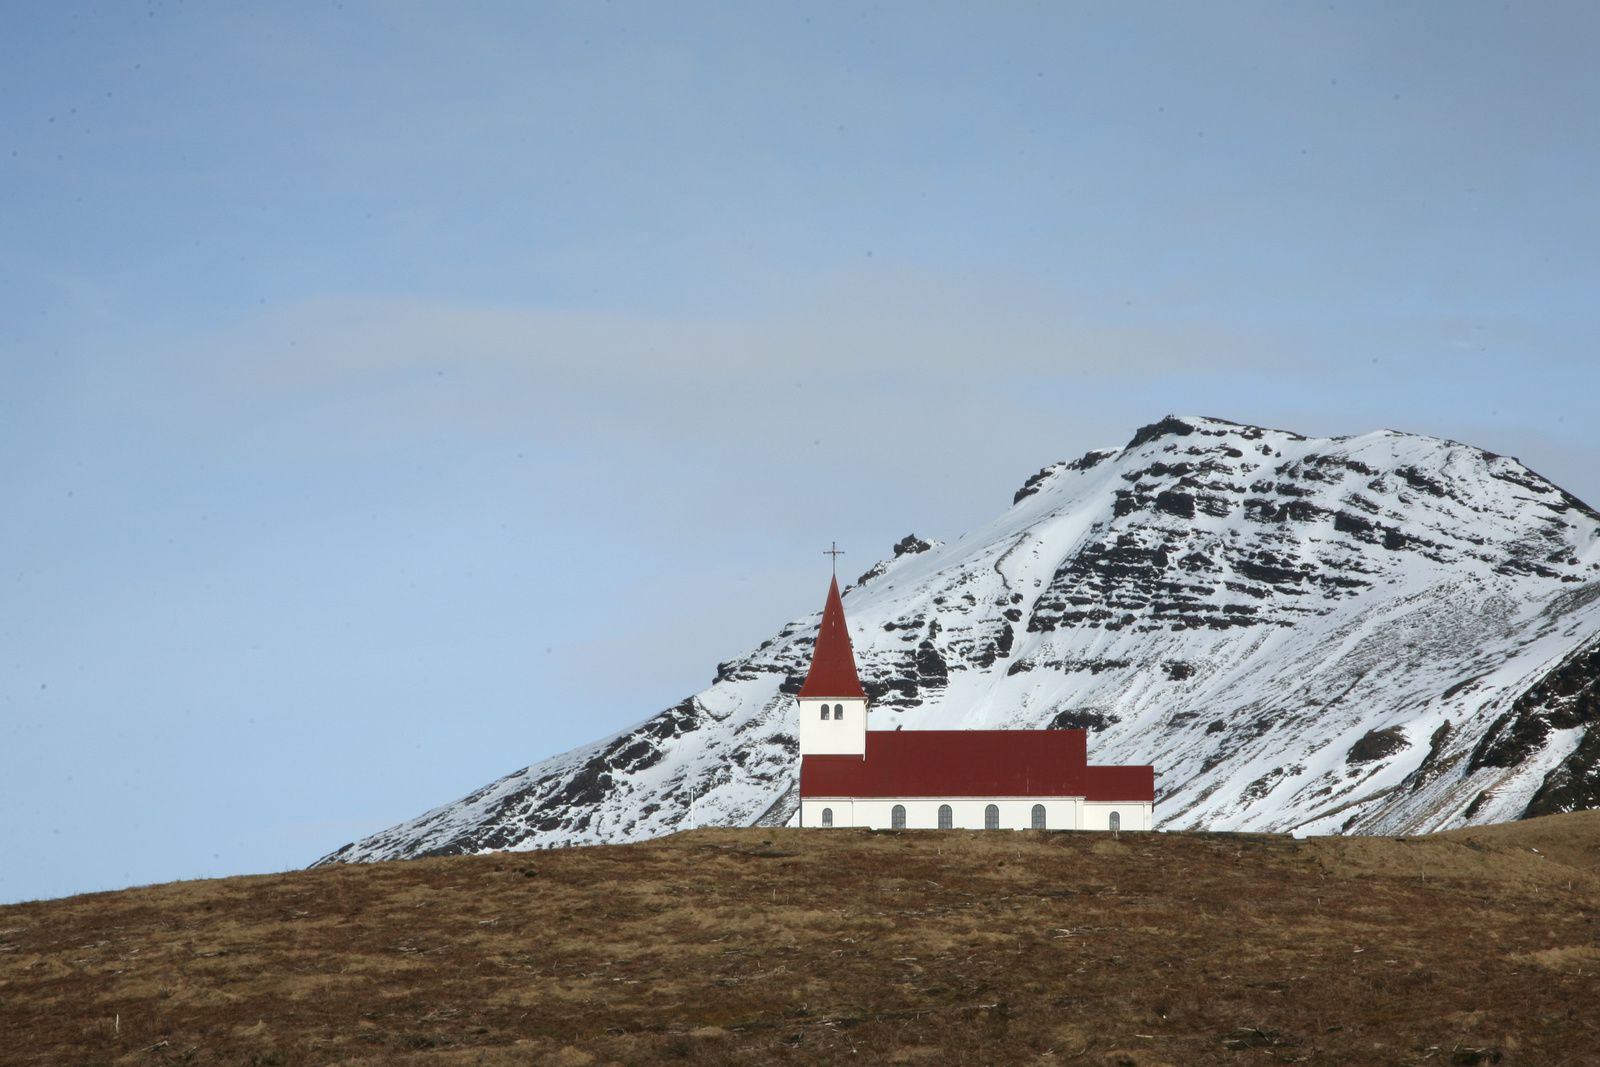 L'église de Vik sur la colline - photo © Bernard Duyck 2015